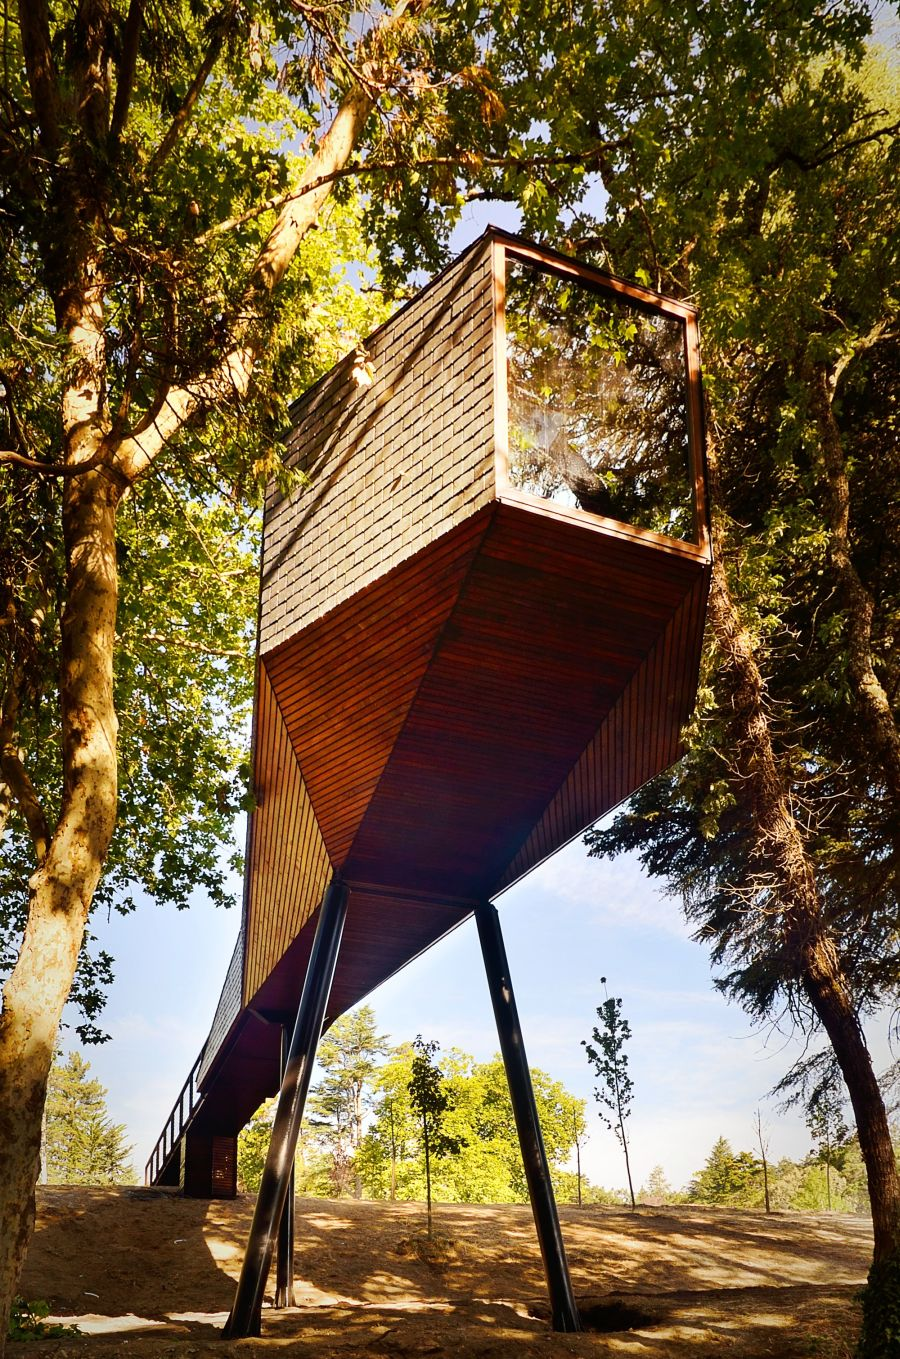 Tress Snake House in Pedras Salgadas Eco Resort, Portugal